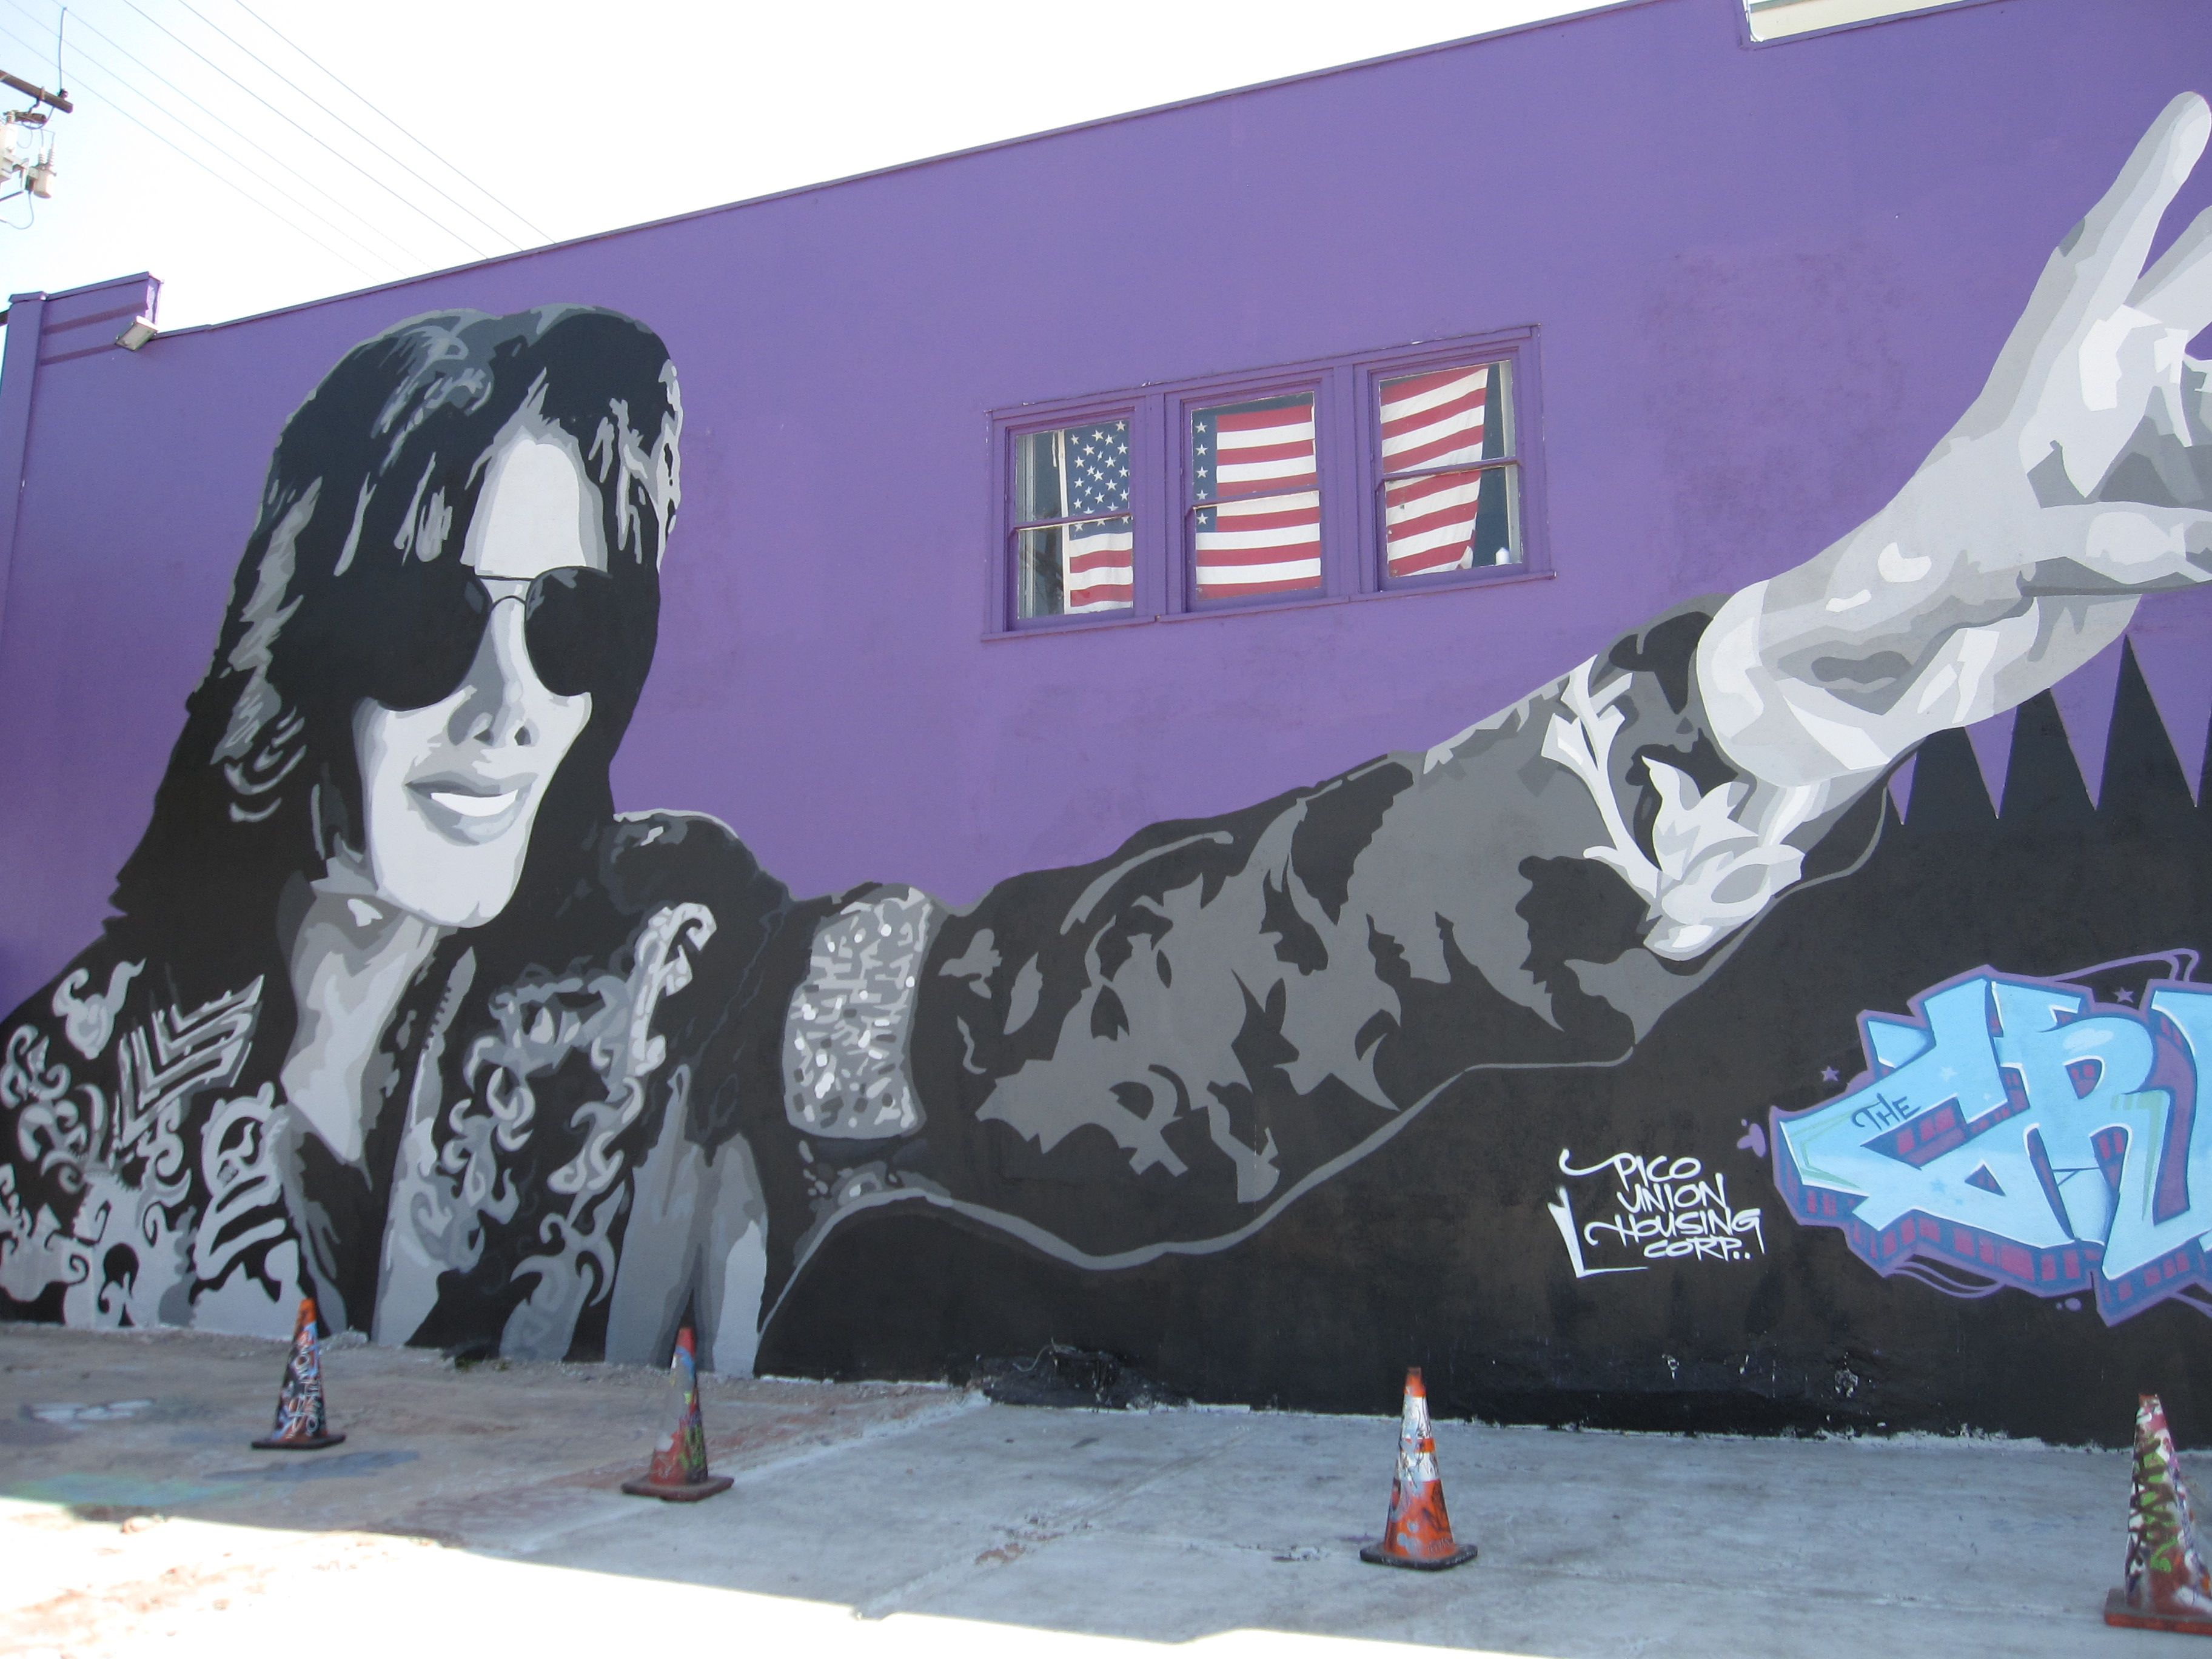 This Mural is at the Graff Lab in Down Town LA near Staples Center #MichaelJacksonBirthday #inhollywoodtv